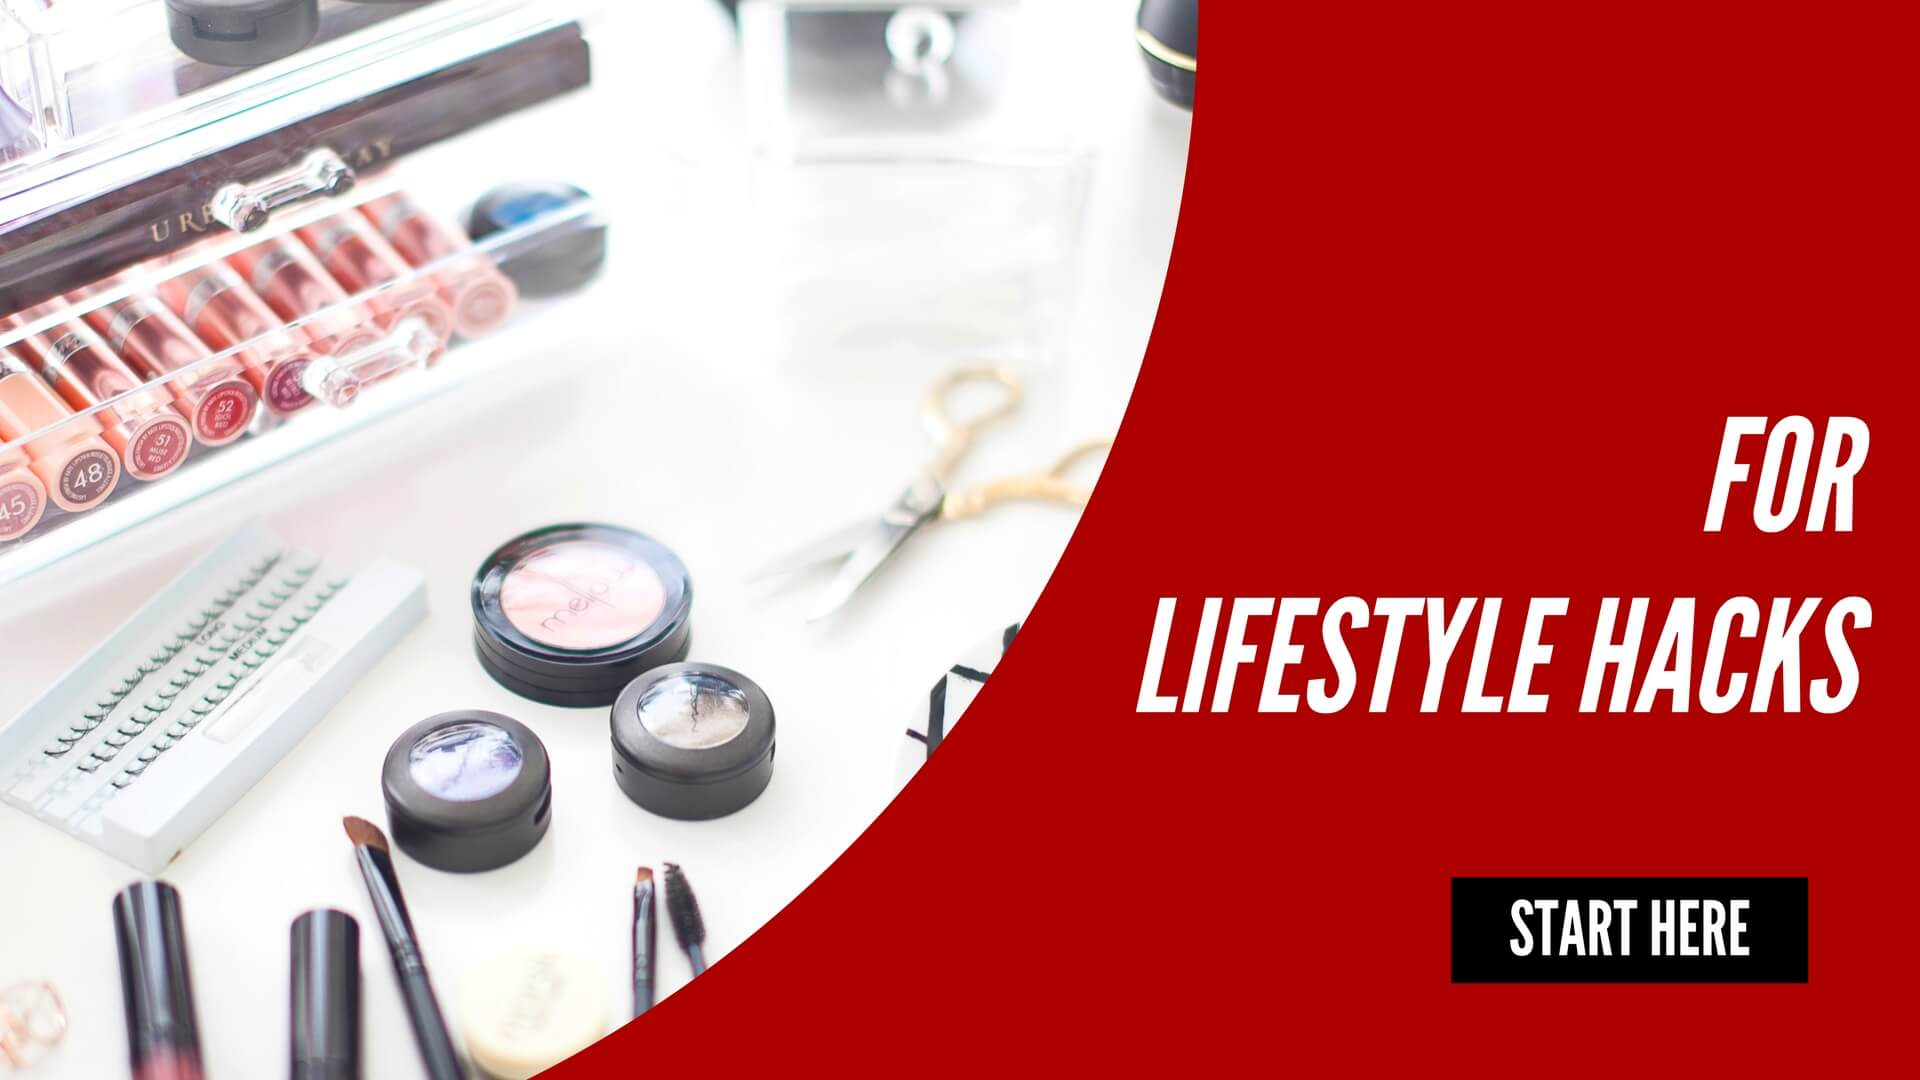 Are you after lifestyle hacks. Start here for tips on beauty, fashion, productivity and more